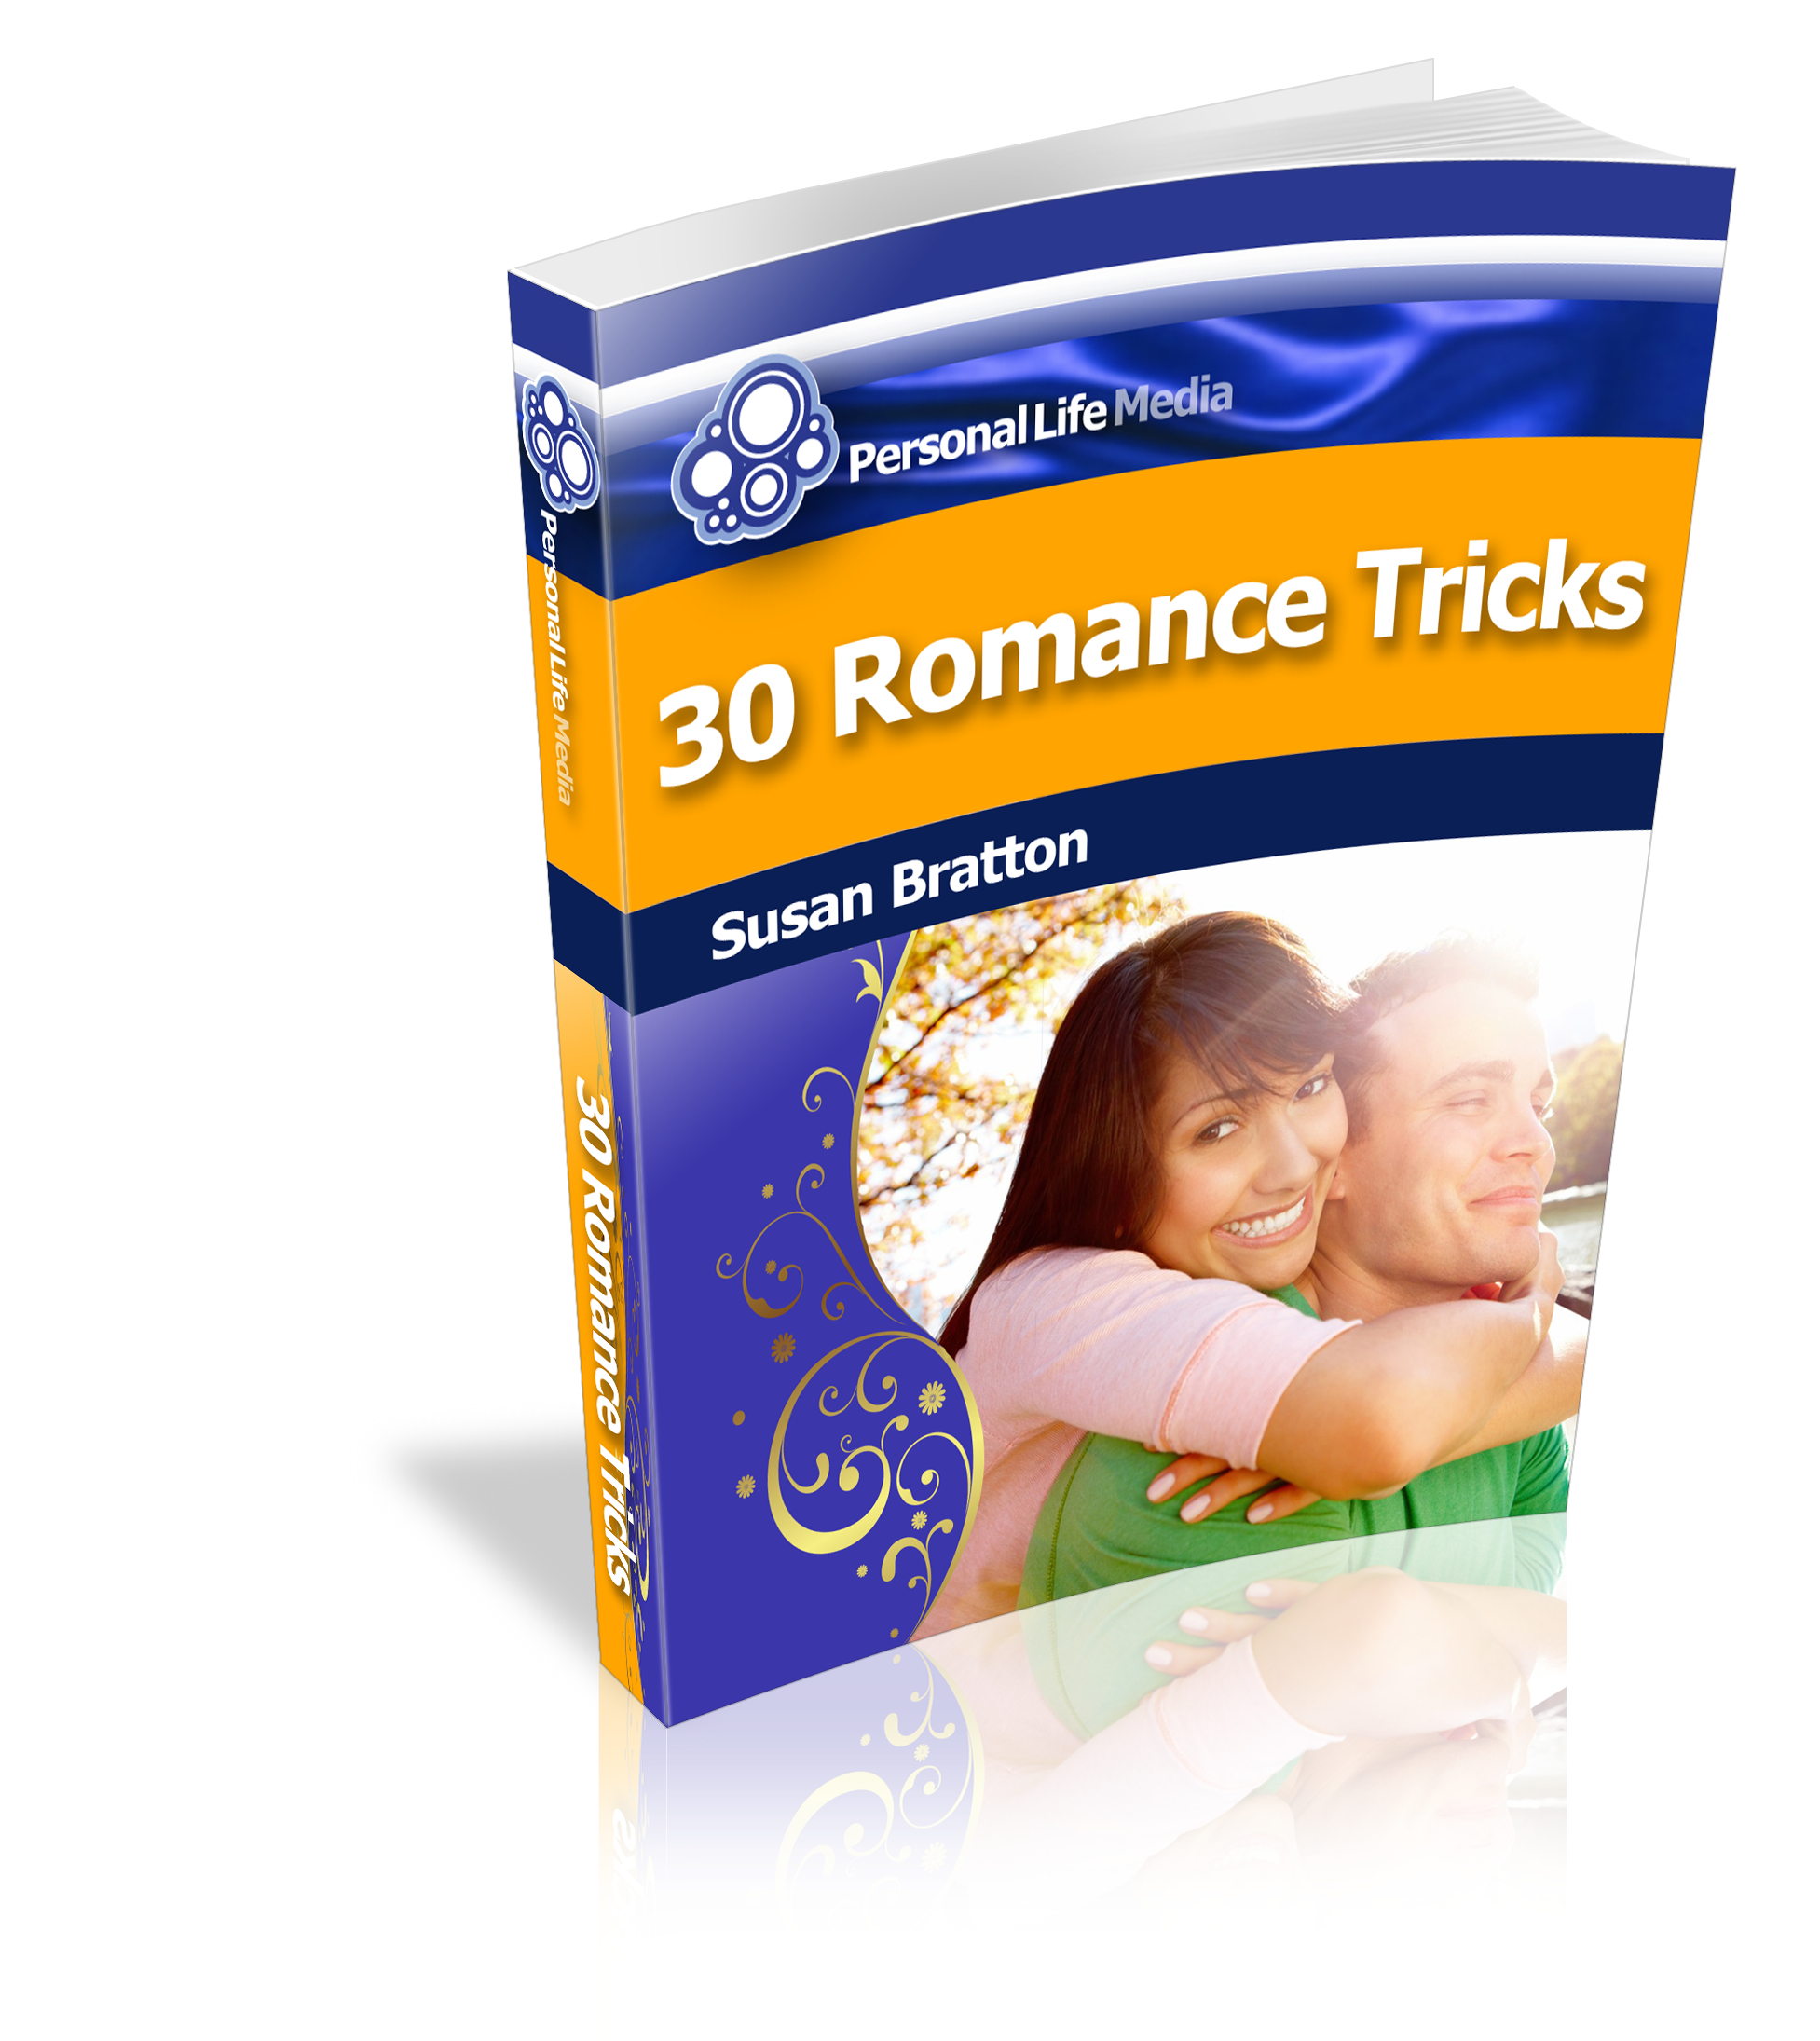 http://members.personallifemedia.com/wp-content/uploads/2012/11/30_Romance_Tricks_BOOK_1.jpg